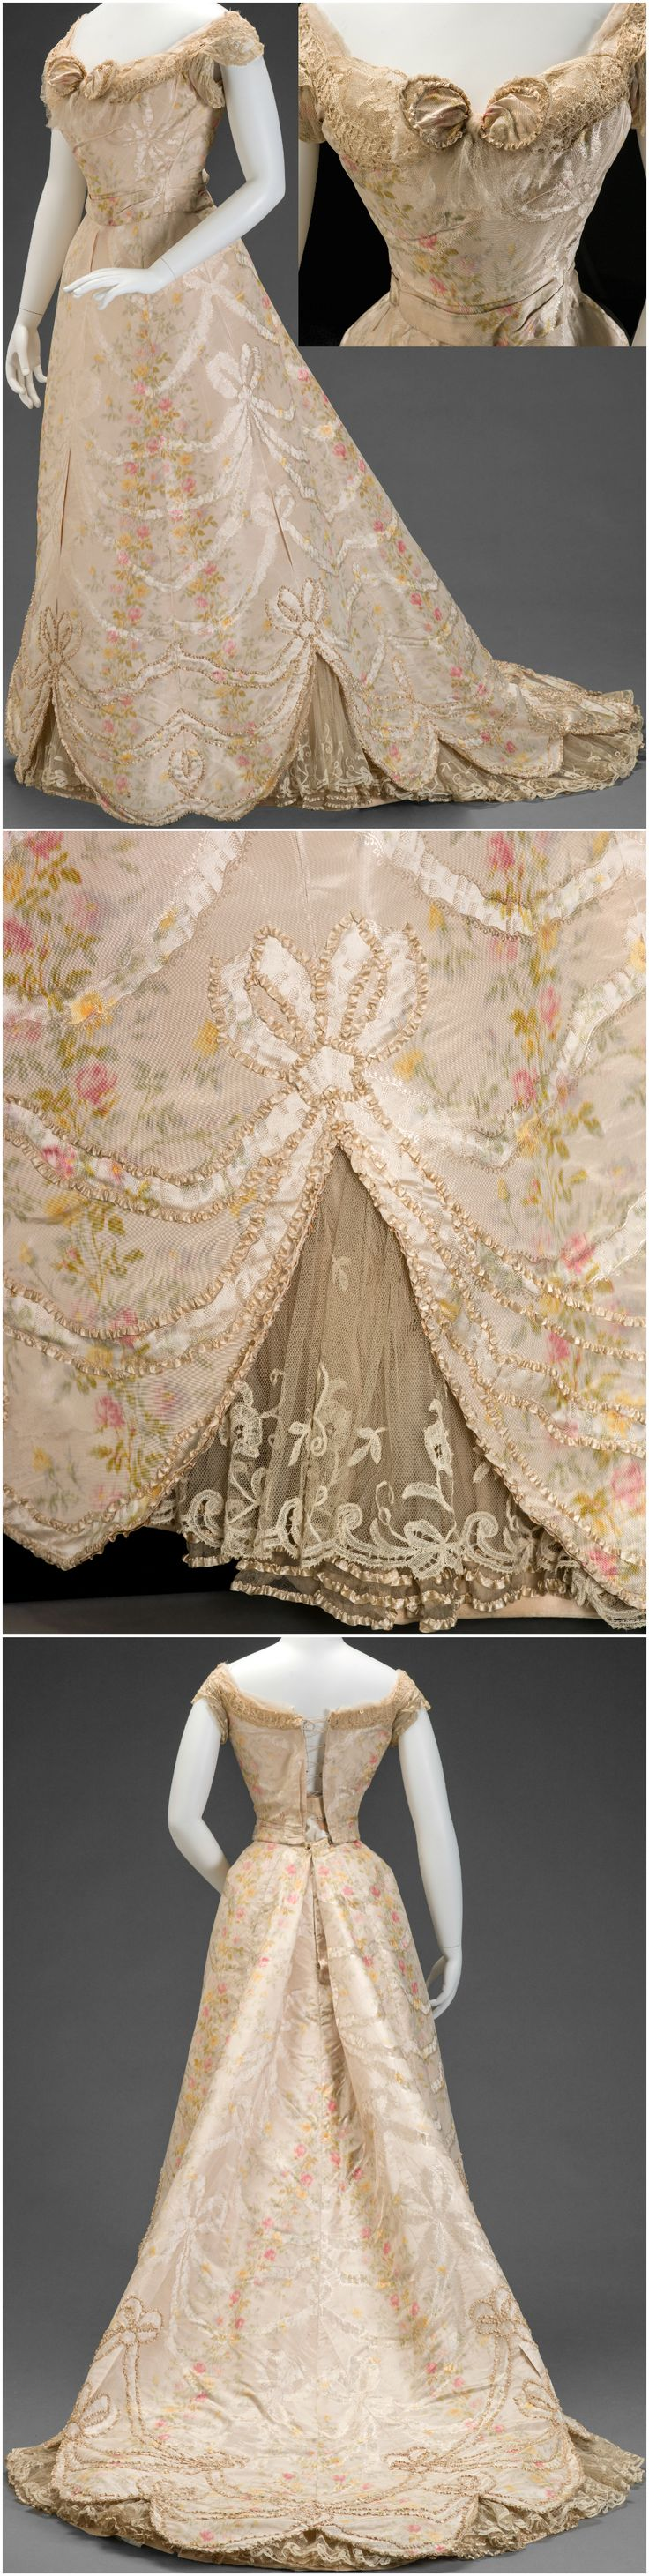 """Ball gown, by G. and E. Spitzer (Austrian), about 1900, at the Indianapolis Museum of Art. IMA: """"This expensive fabric was produced in Lyon, France. The elaborate surface decoration was achieved by a combination of printed warps (chiné), woven bows and swags, and then the fabric was finished with a watered silk (moiré) effect... This gown was worn by India Harris, wife of Addison C. Harris, Ambassador to Austria from 1899 to 1901."""" CLICK THROUGH FOR VERY LARGE, HI-RES IMAGES."""